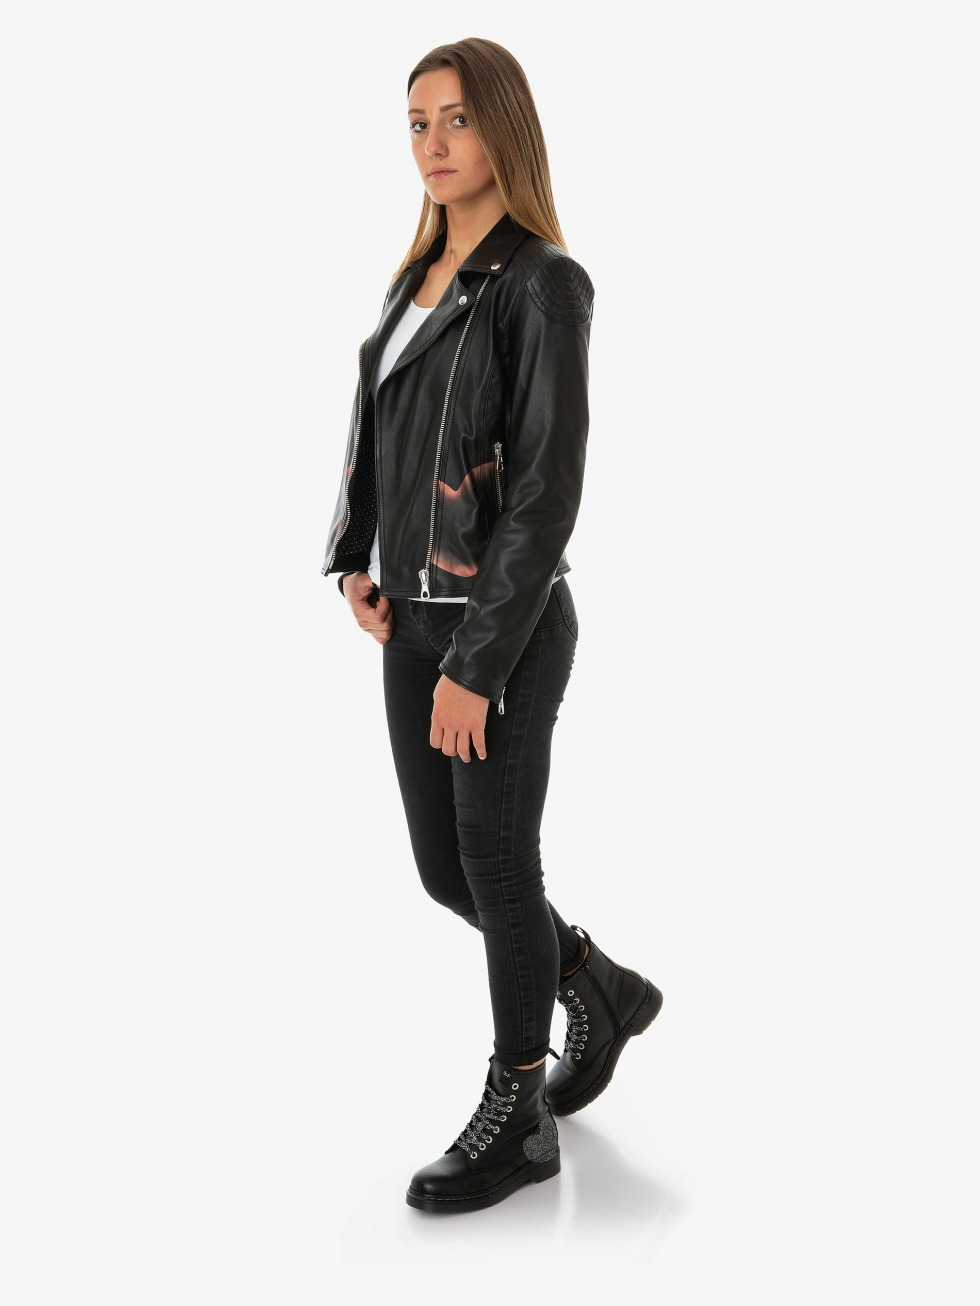 Ambra Black Biker Jacket - Smoked Red Lipstick Star